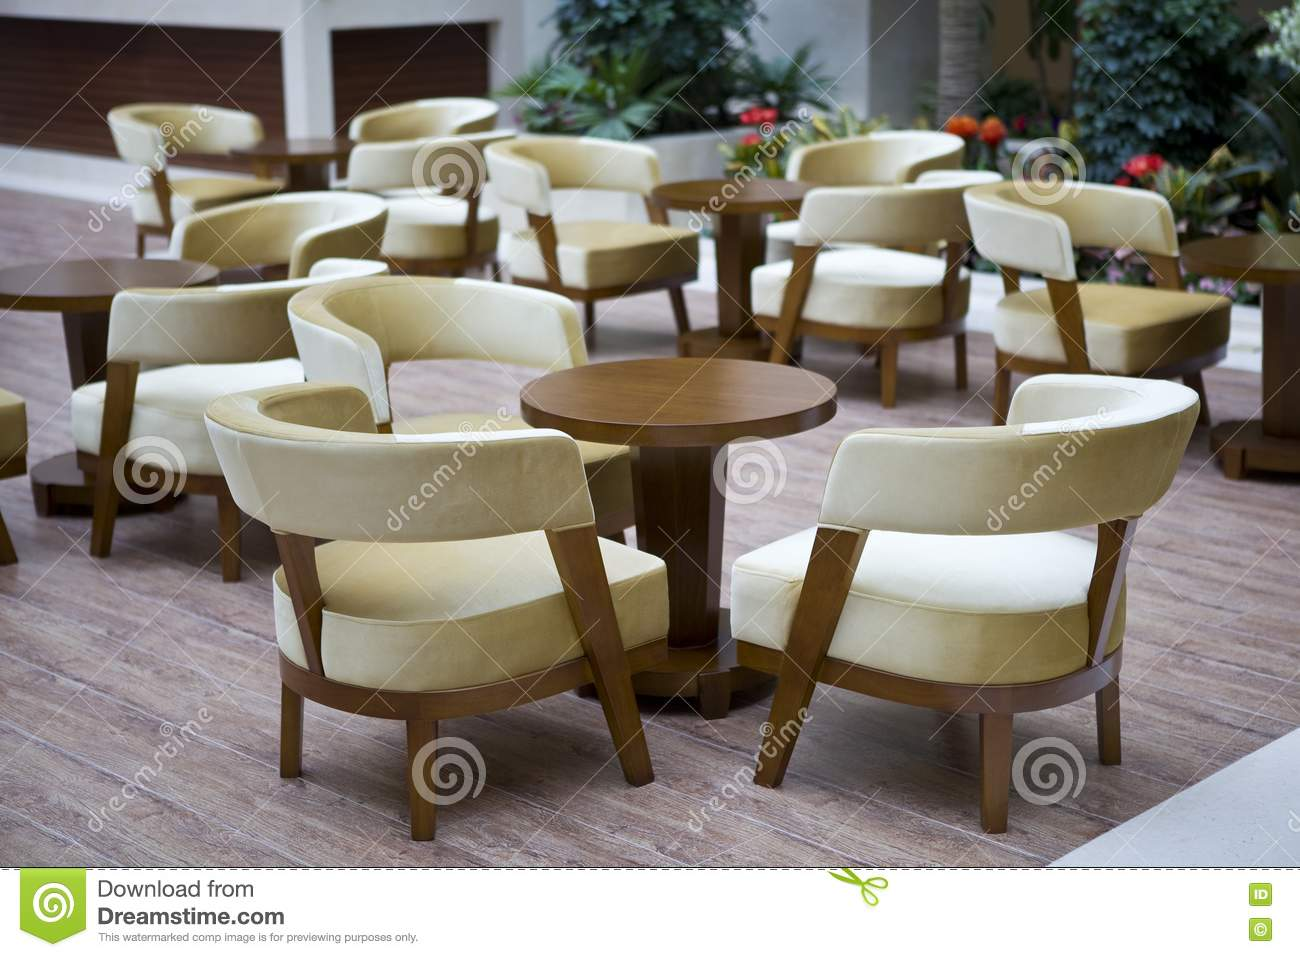 hotel lobby and chairs royalty free stock photo image 14760995